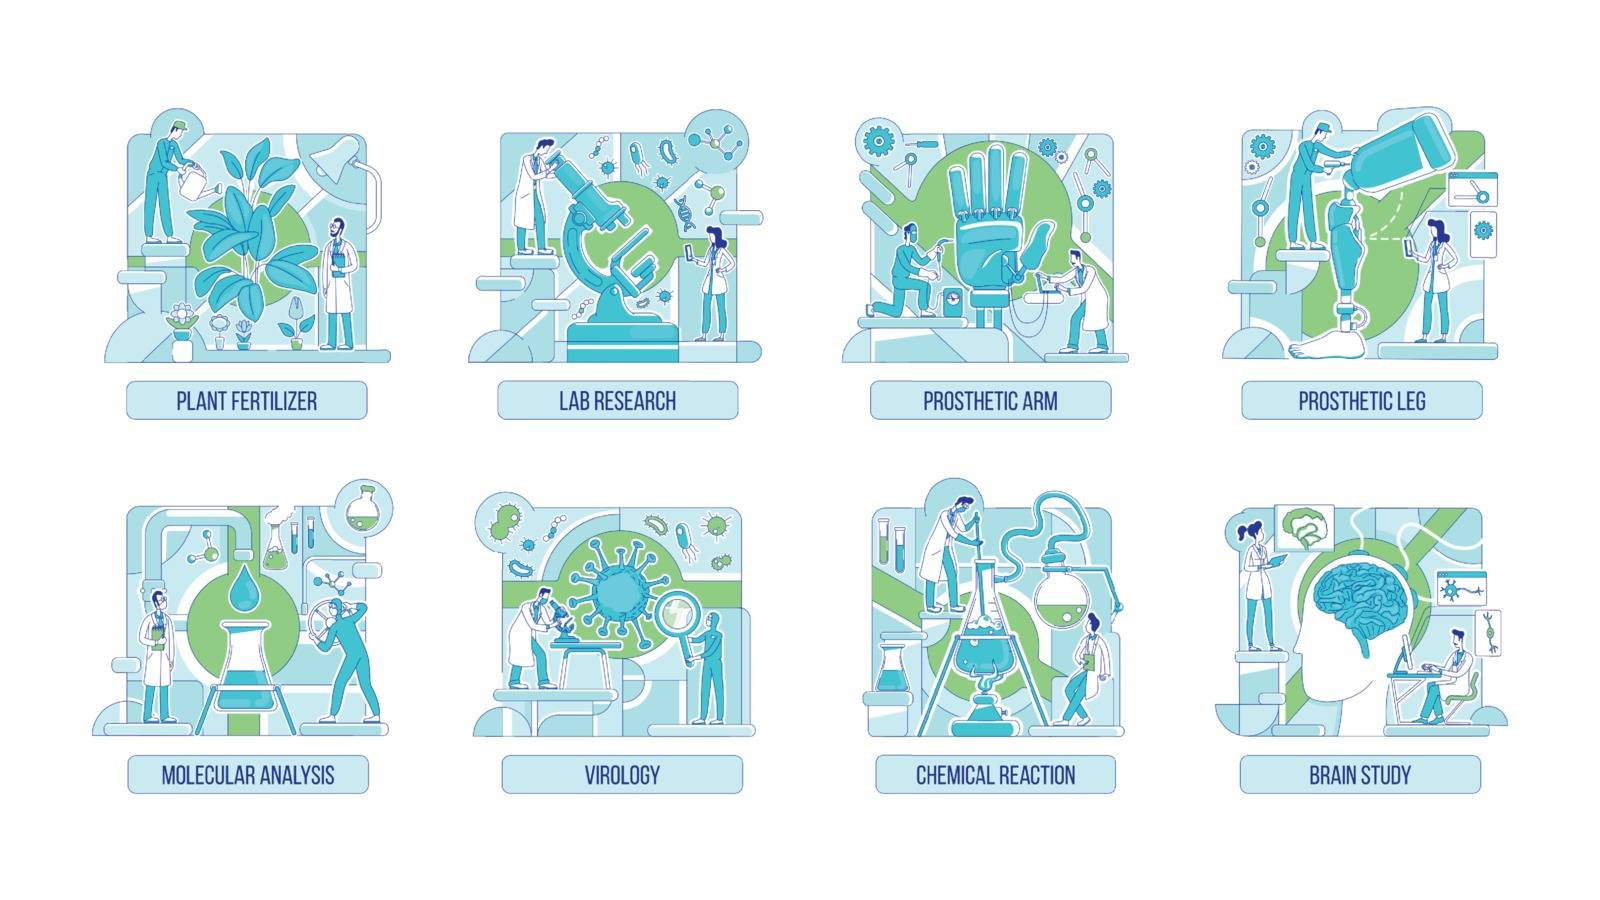 Laboratory experiments thin line concept vector illustrations set. Scientists 2D cartoon characters for web design. Biology, chemistry, prosthetics, neuroscience and botany creative ideas. ZIP file contains: EPS, JPG. If you are interested in custom design or want to make some adjustments to purchase the product, don't hesitate to contact us! bsd@bsdartfactory.com